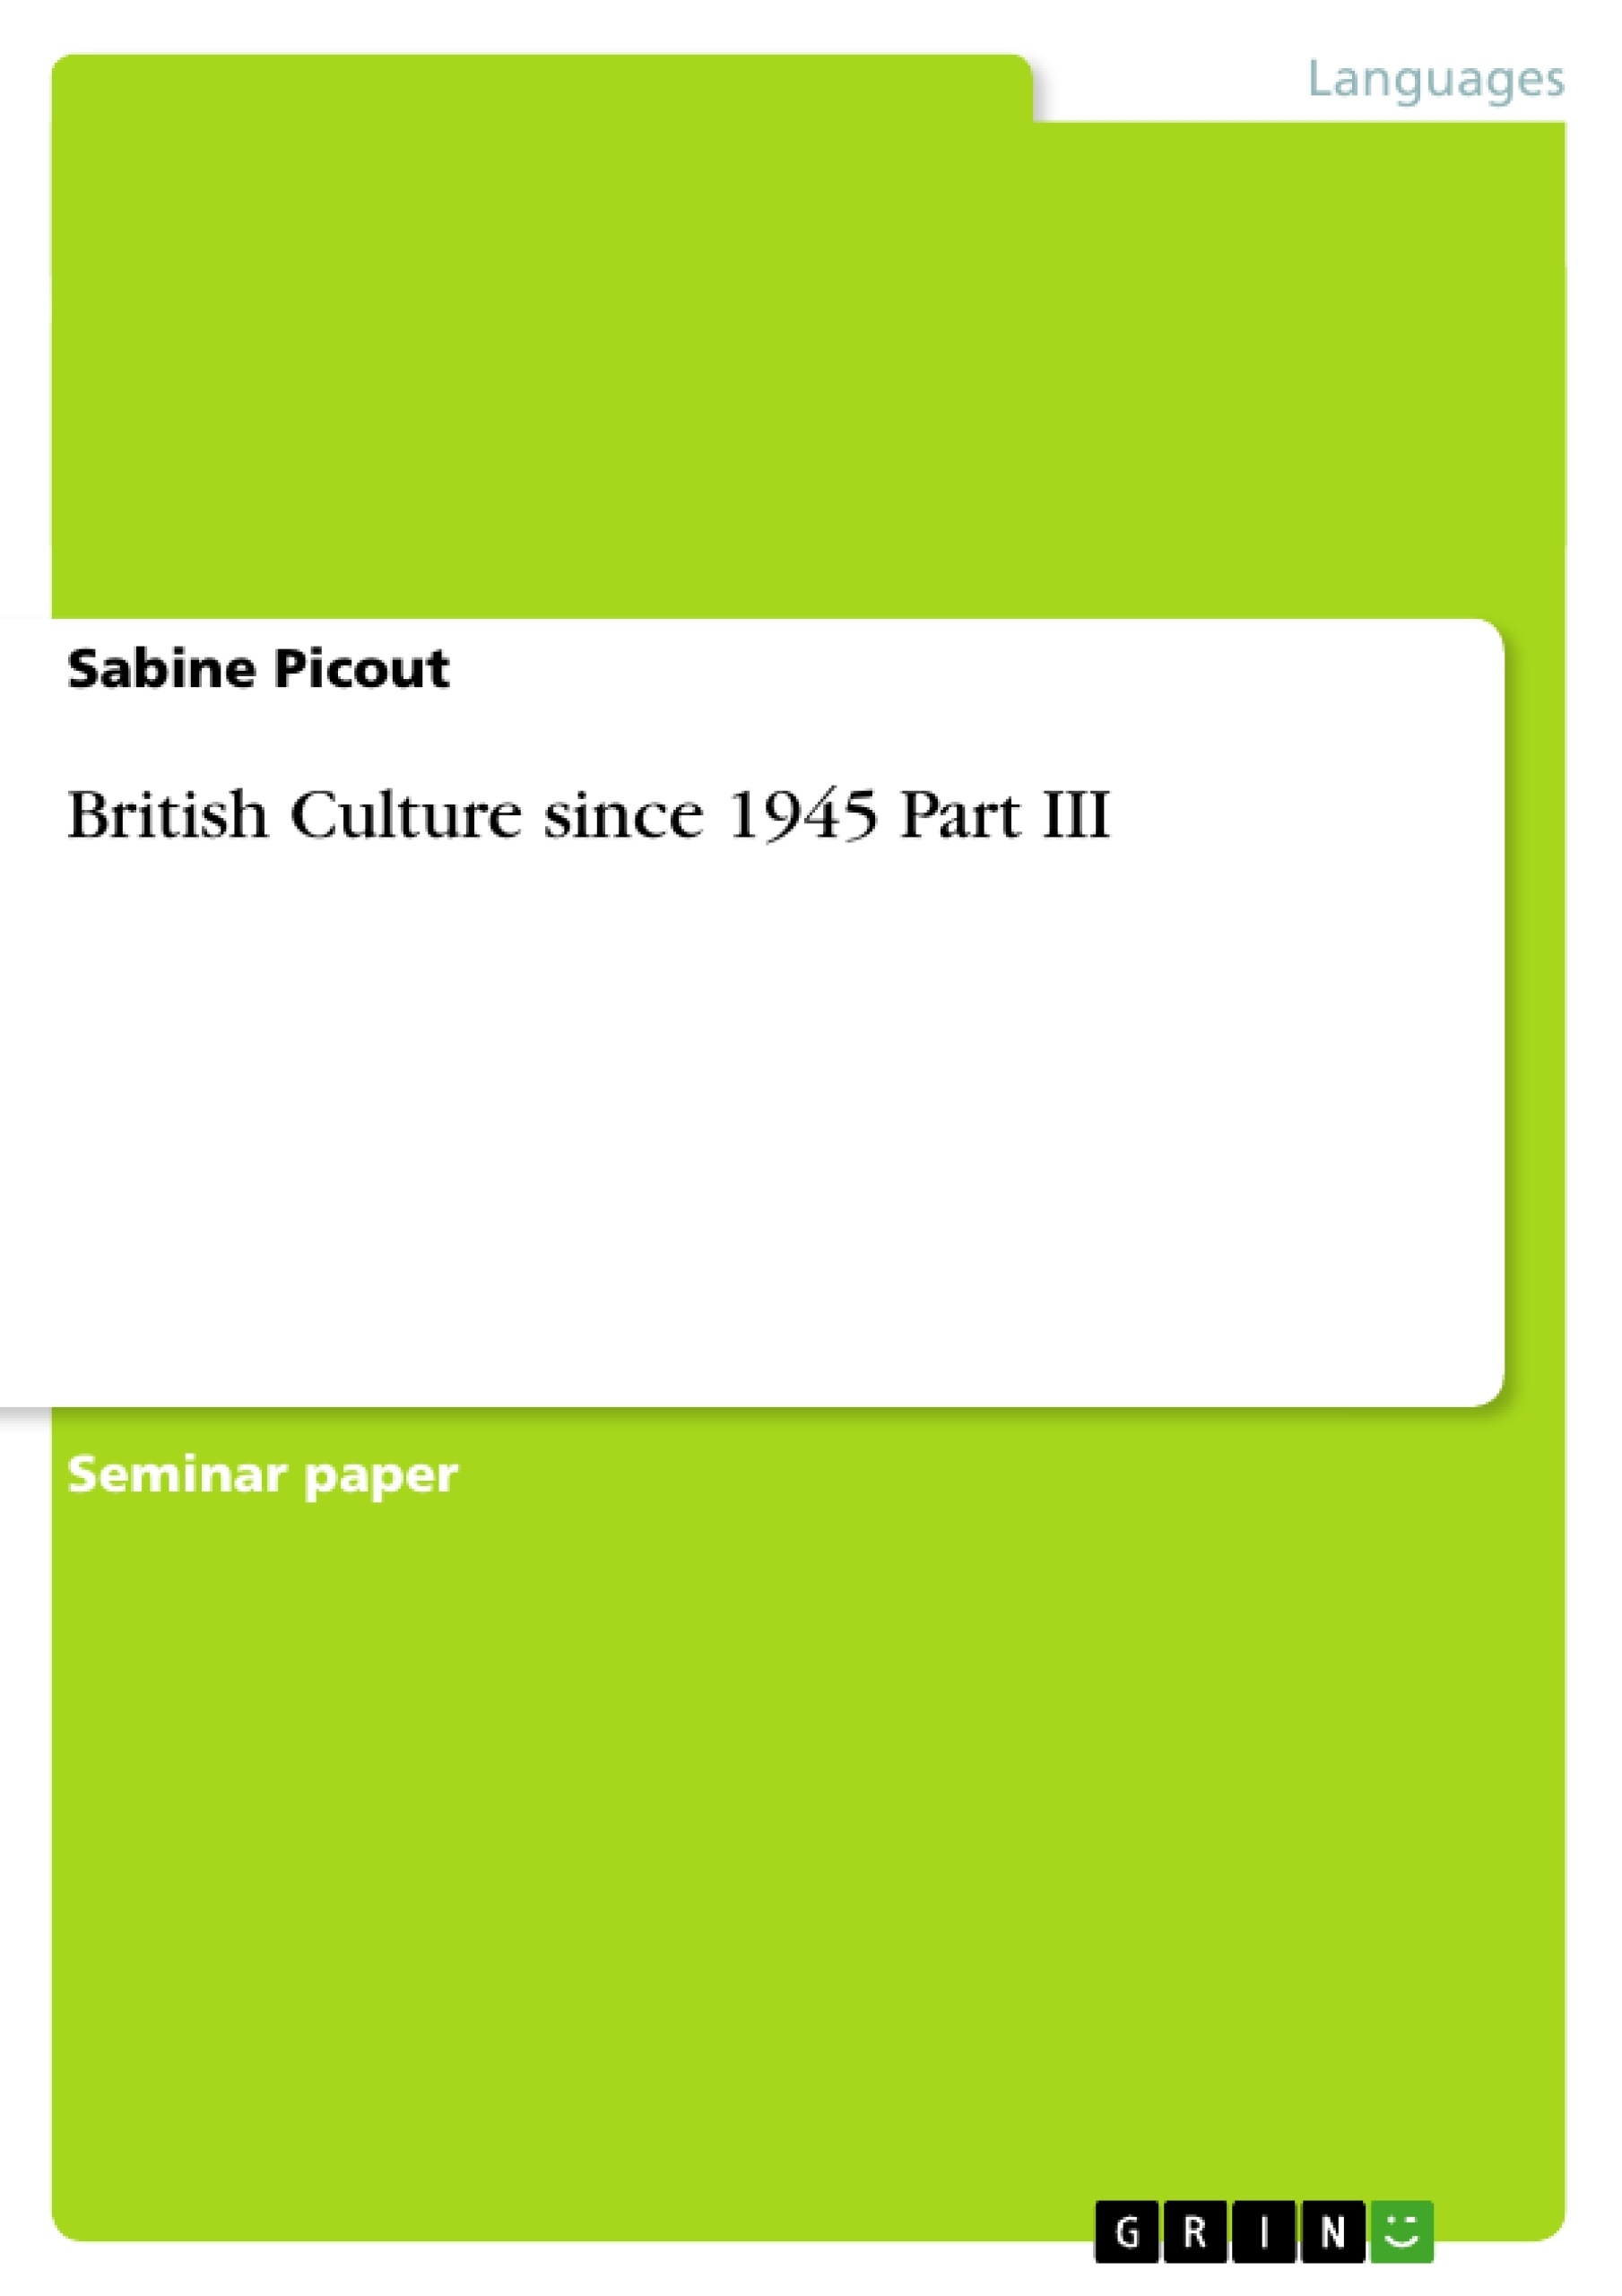 Title: British Culture since 1945 Part III